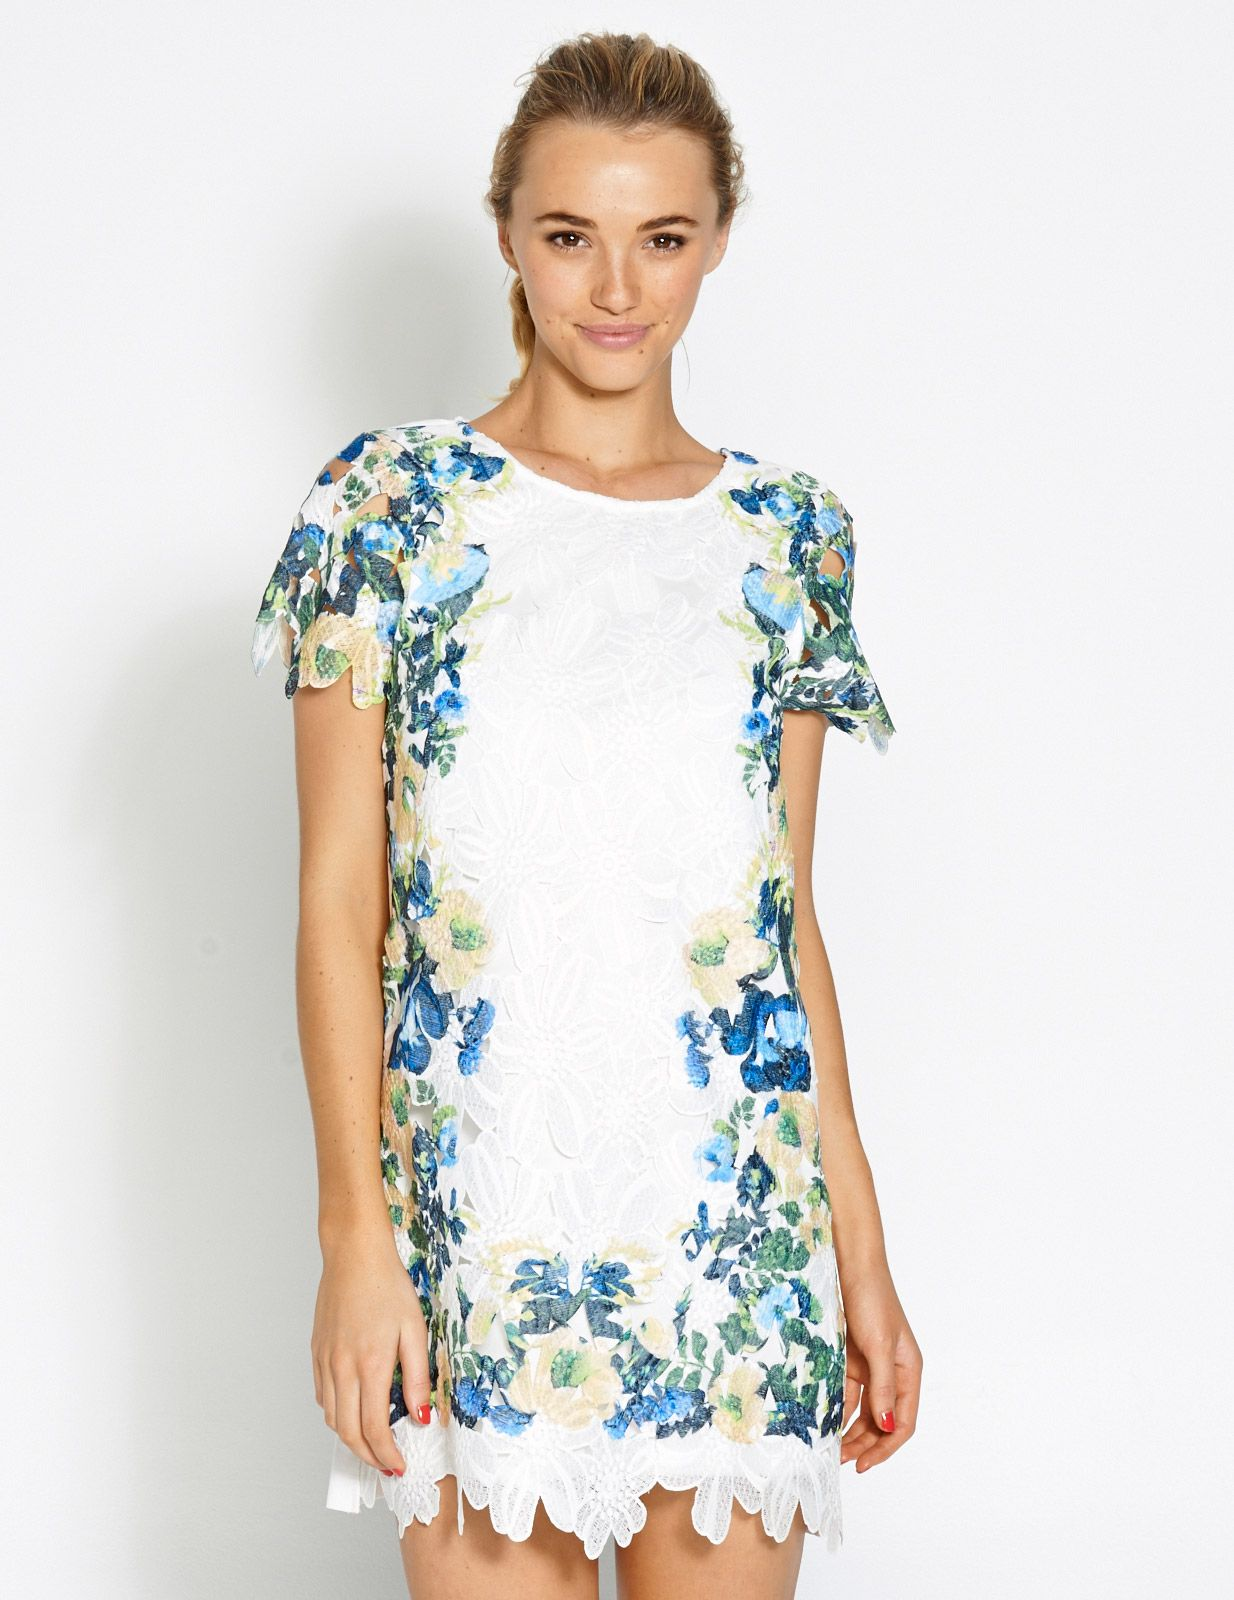 Image for side printed lace dress from dotti wedding pinterest